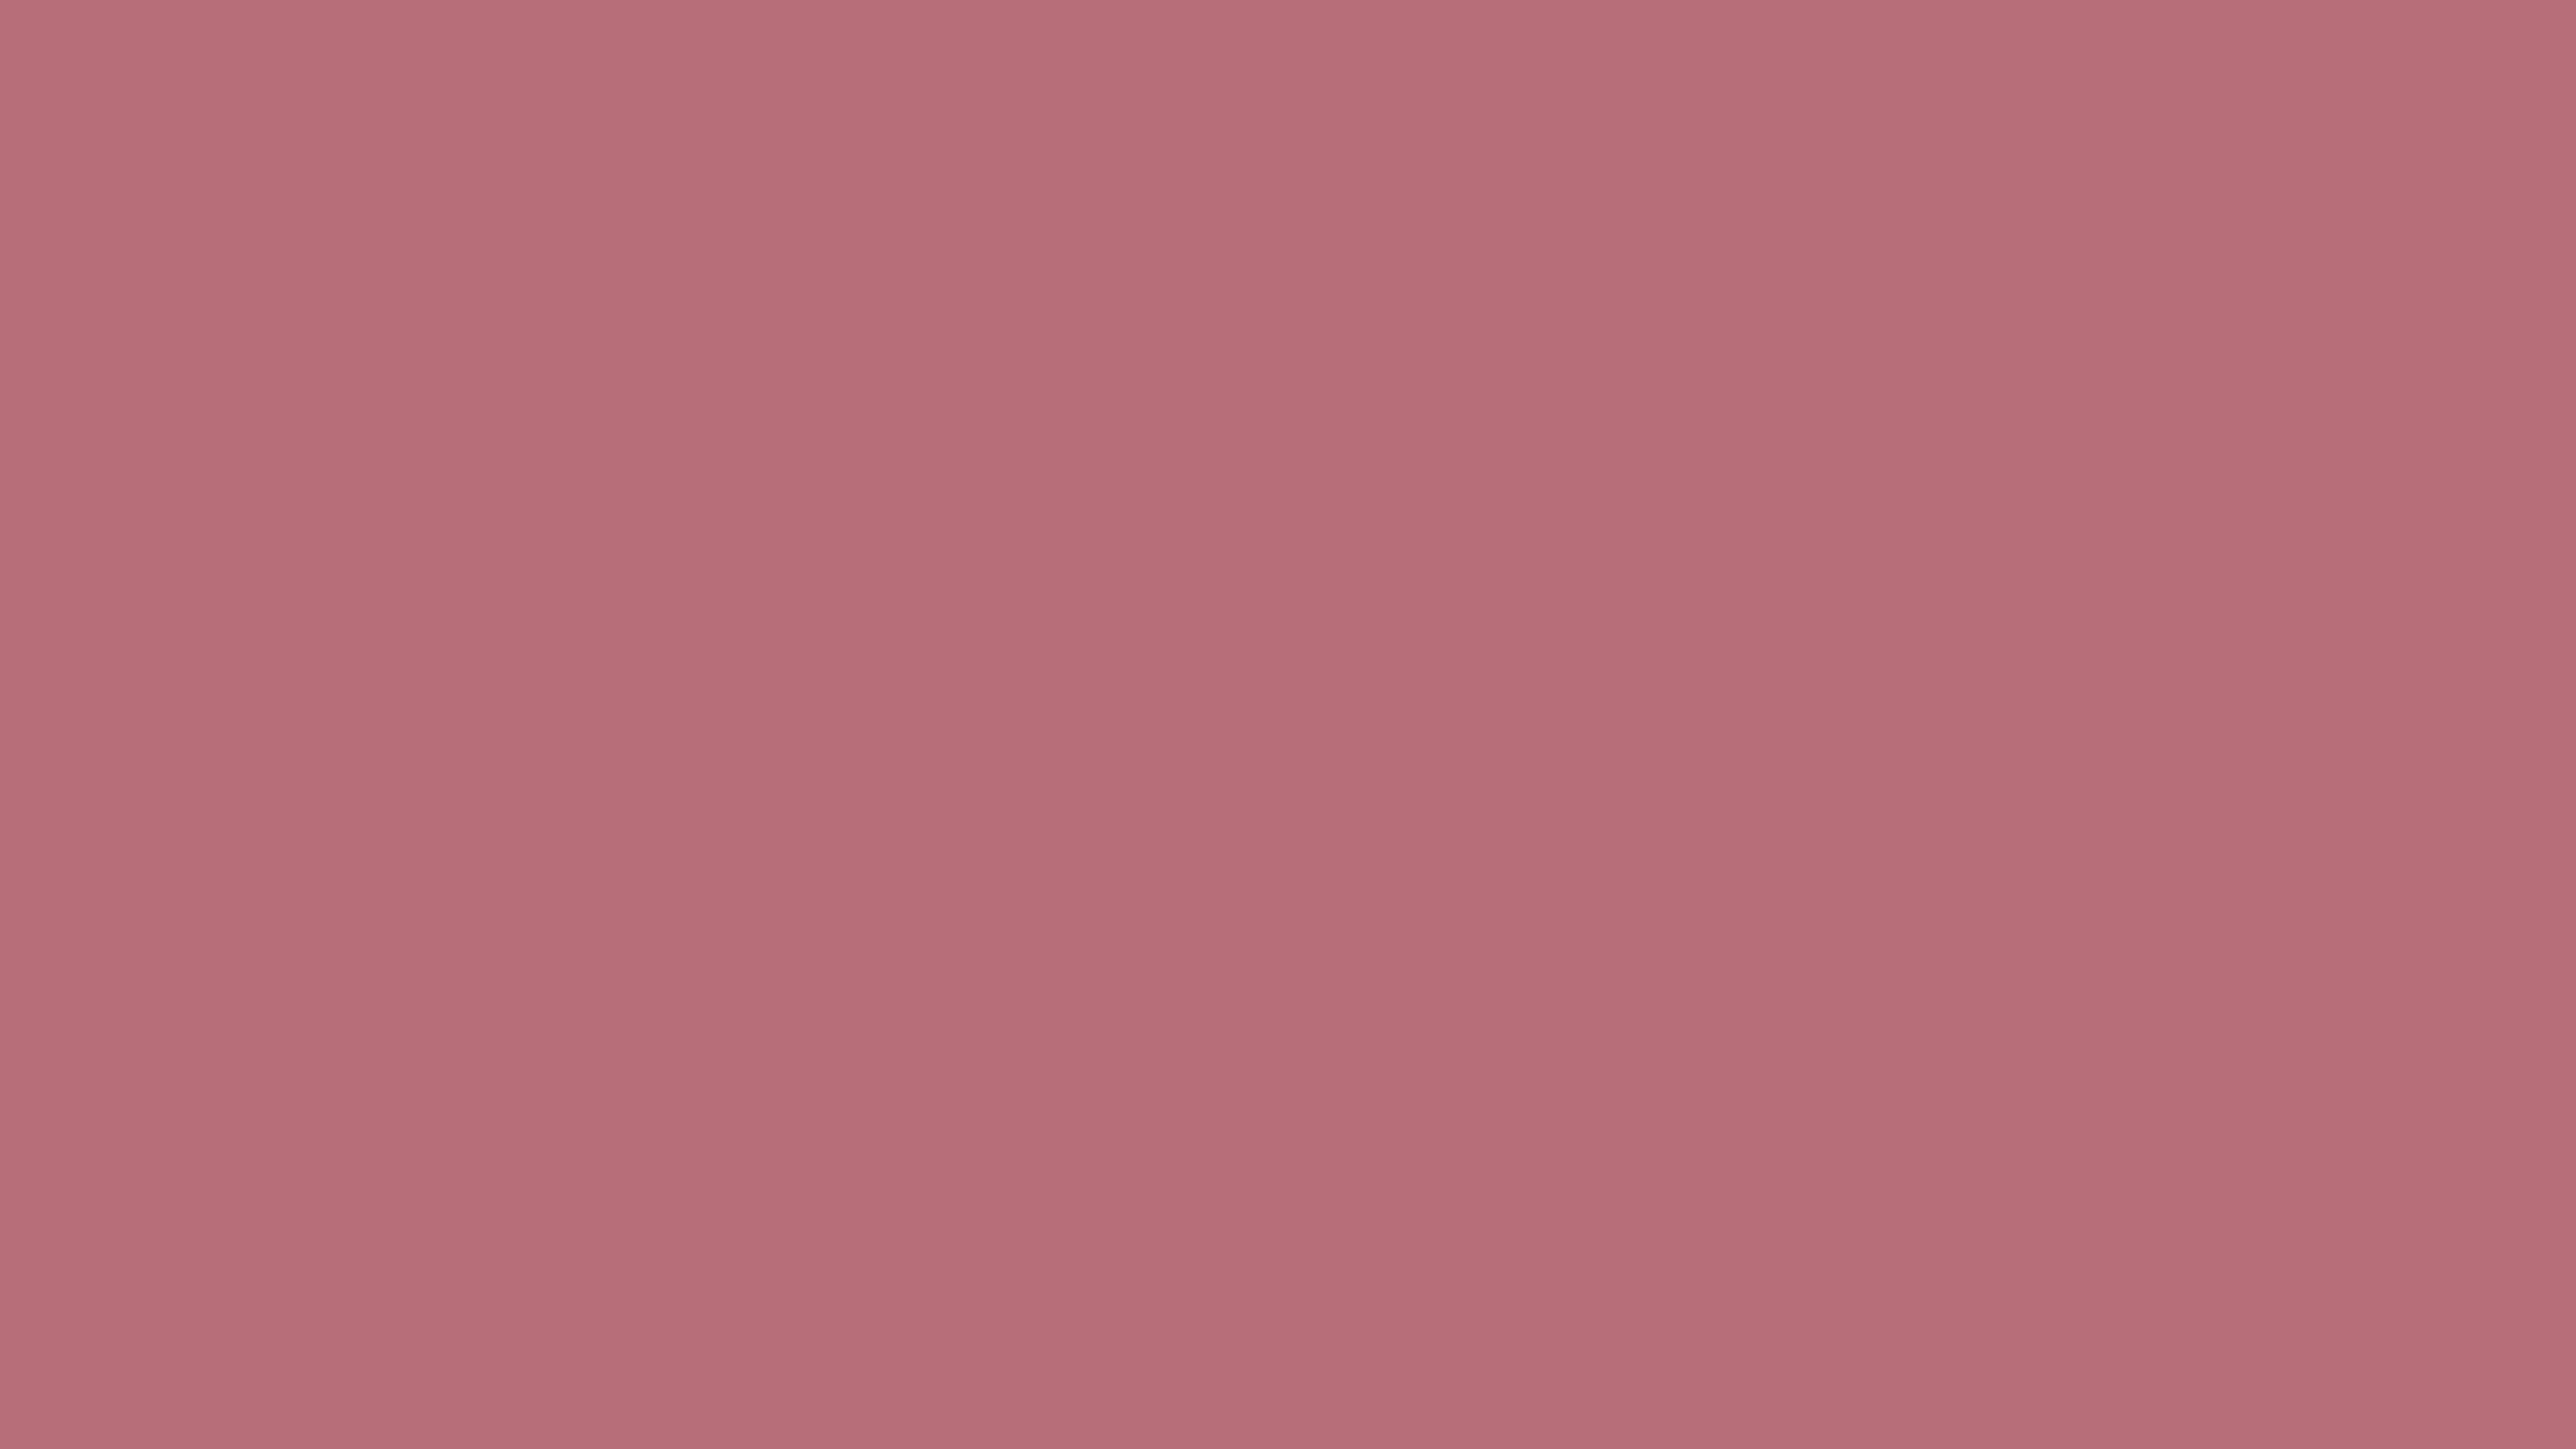 3840x2160 Rose Gold Solid Color Background